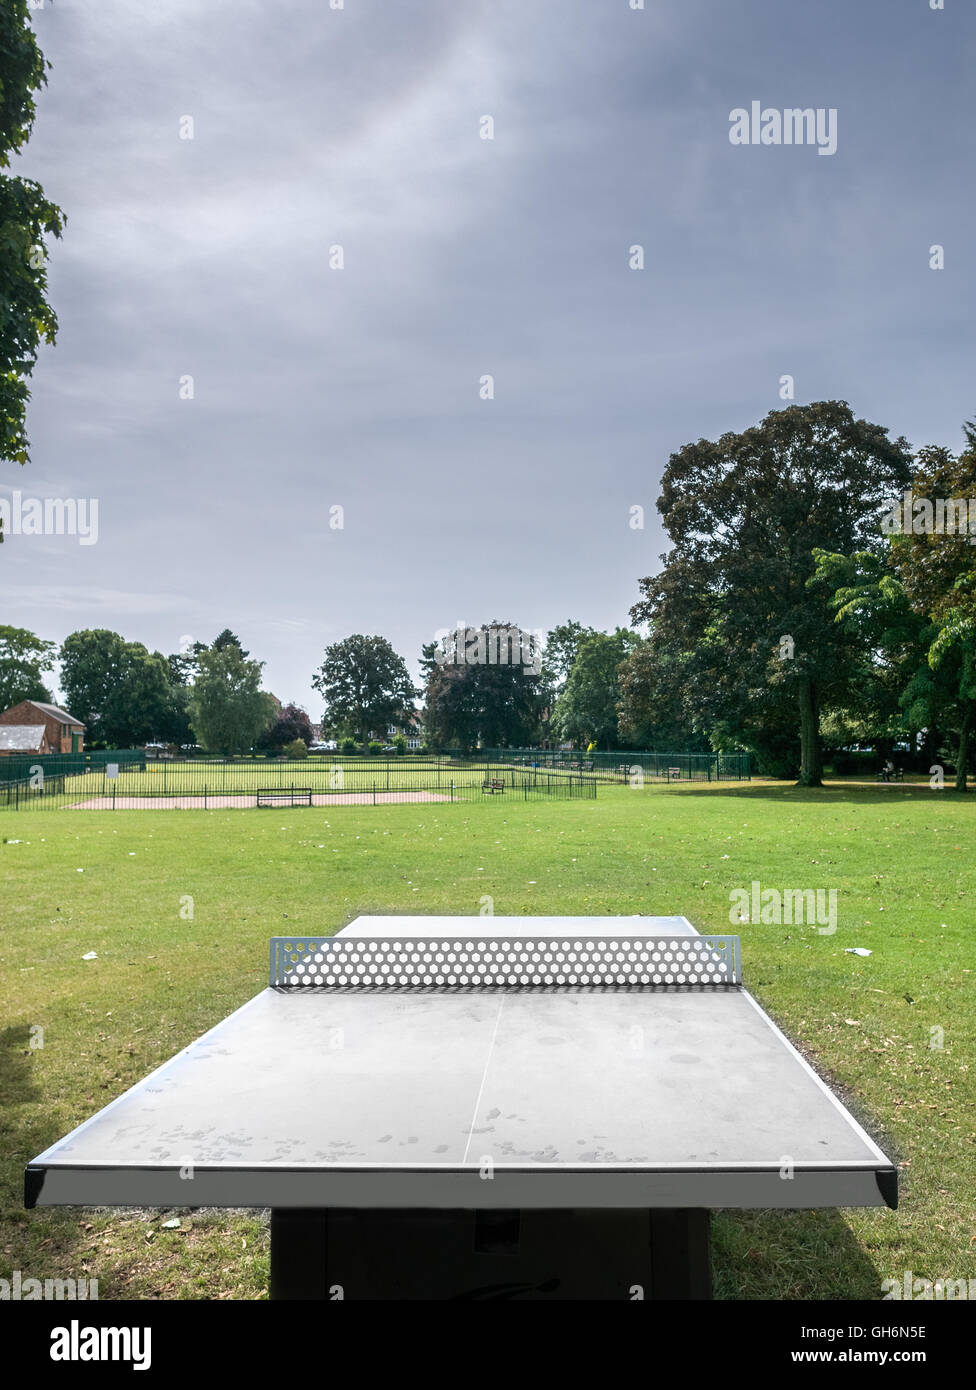 Sport facility at Abington park, the largest park in Northampton, England. - Stock Image